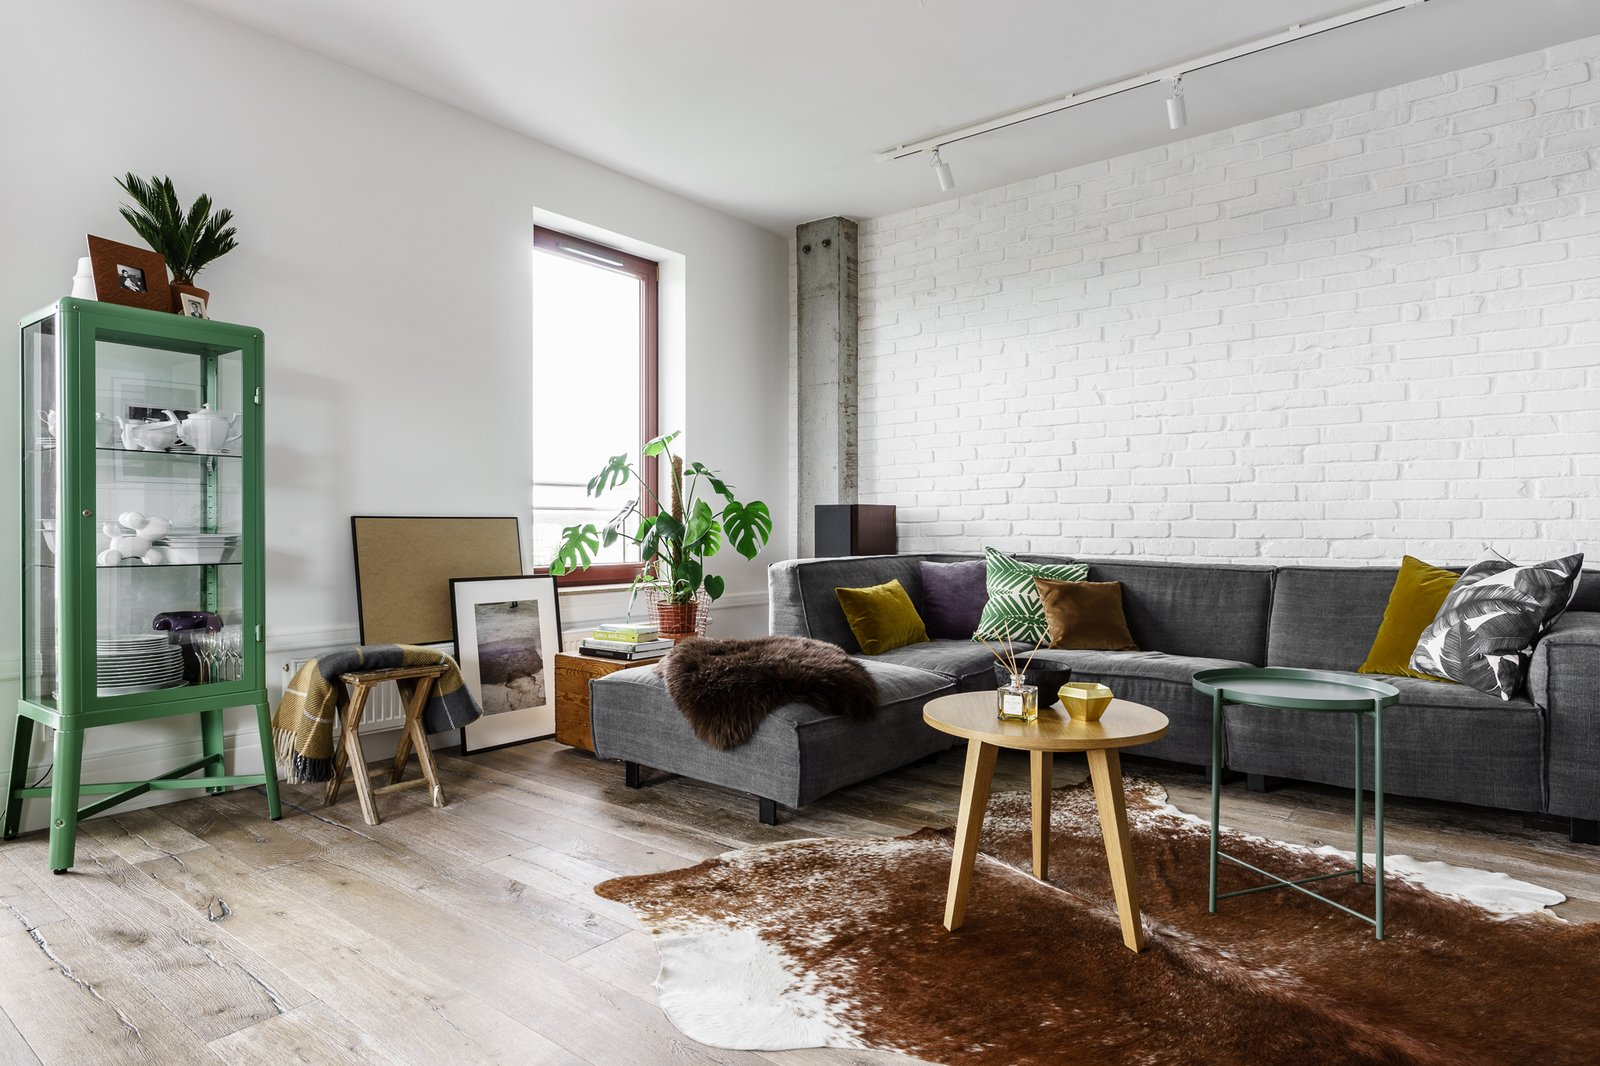 Loft in Poland by Lucyna Kołodziejska | INTERIORS FACTORY